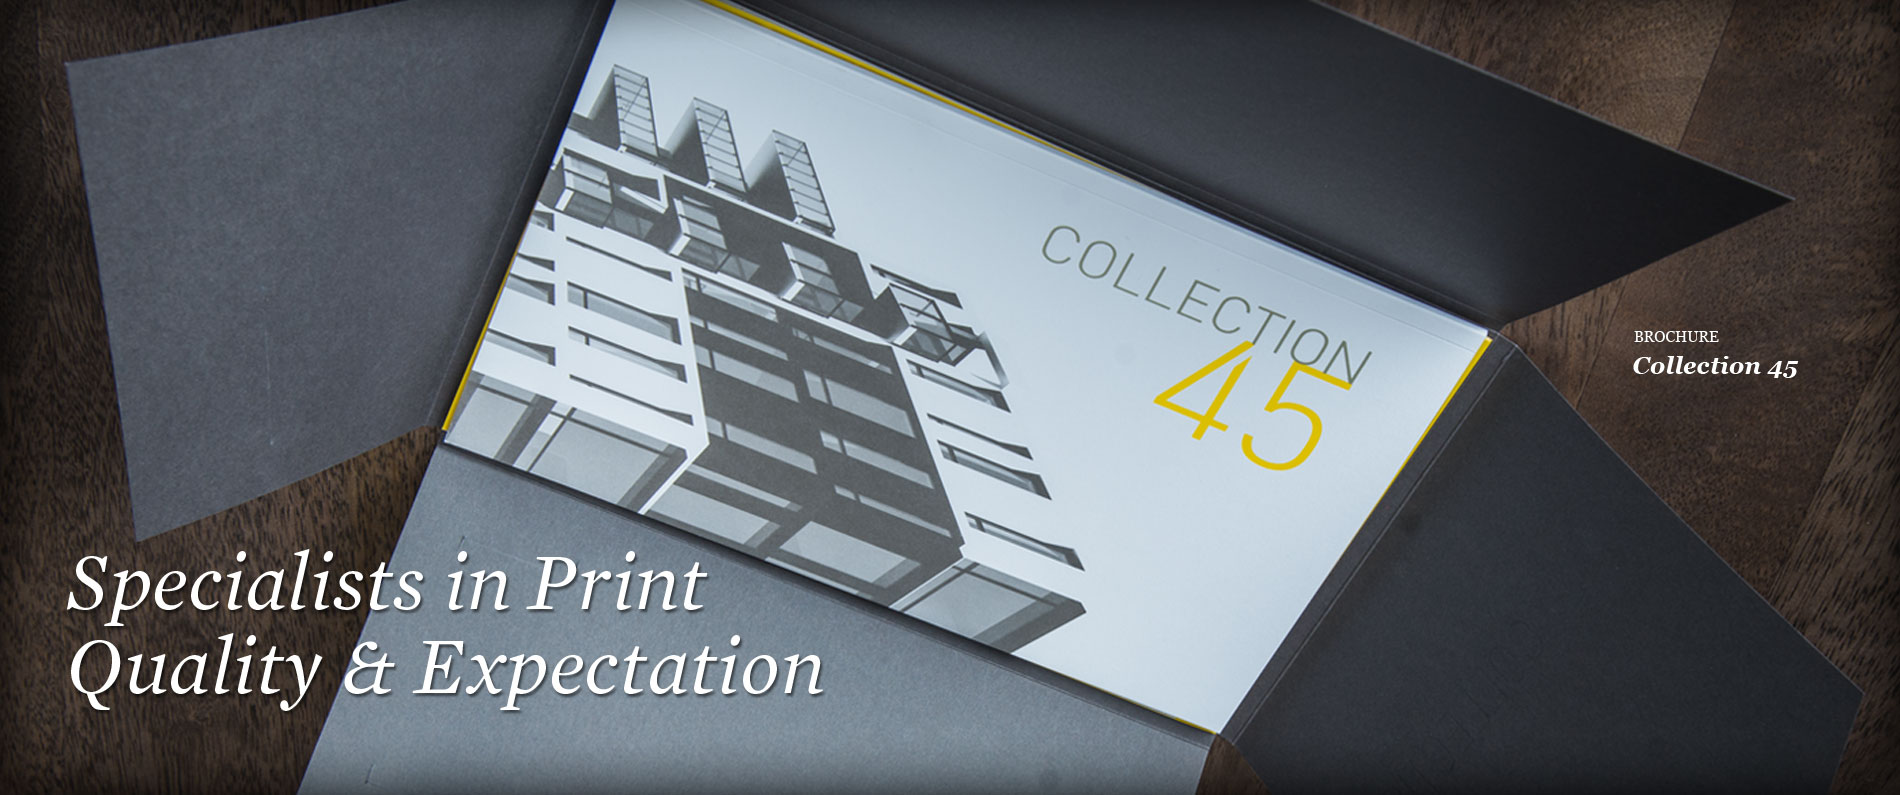 Printed Collection 45 brochure